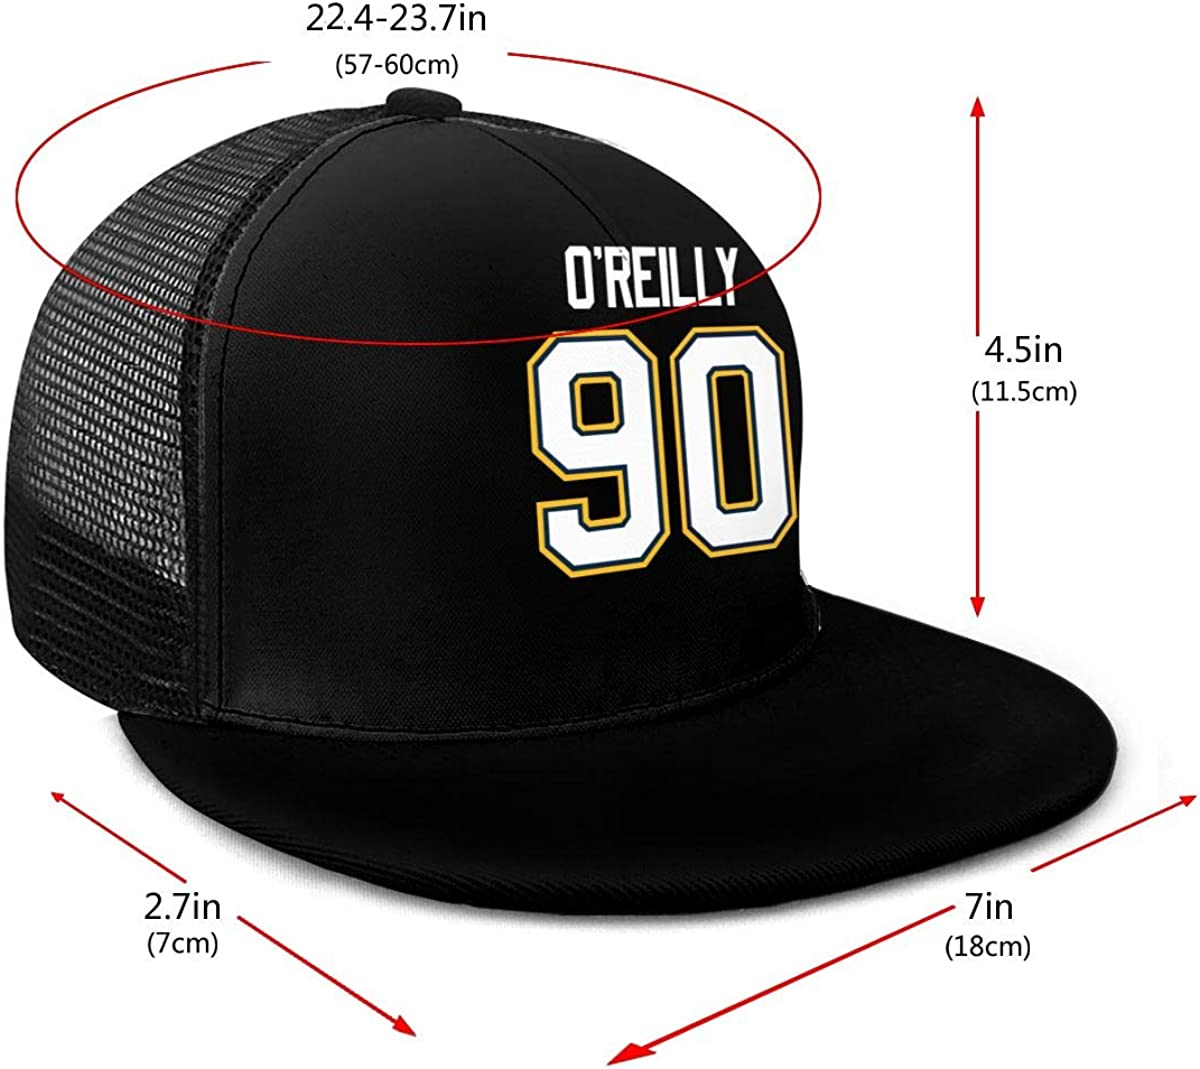 NNHL Unisex Adjustable Flat Mesh Hockey Baseball Cap Black